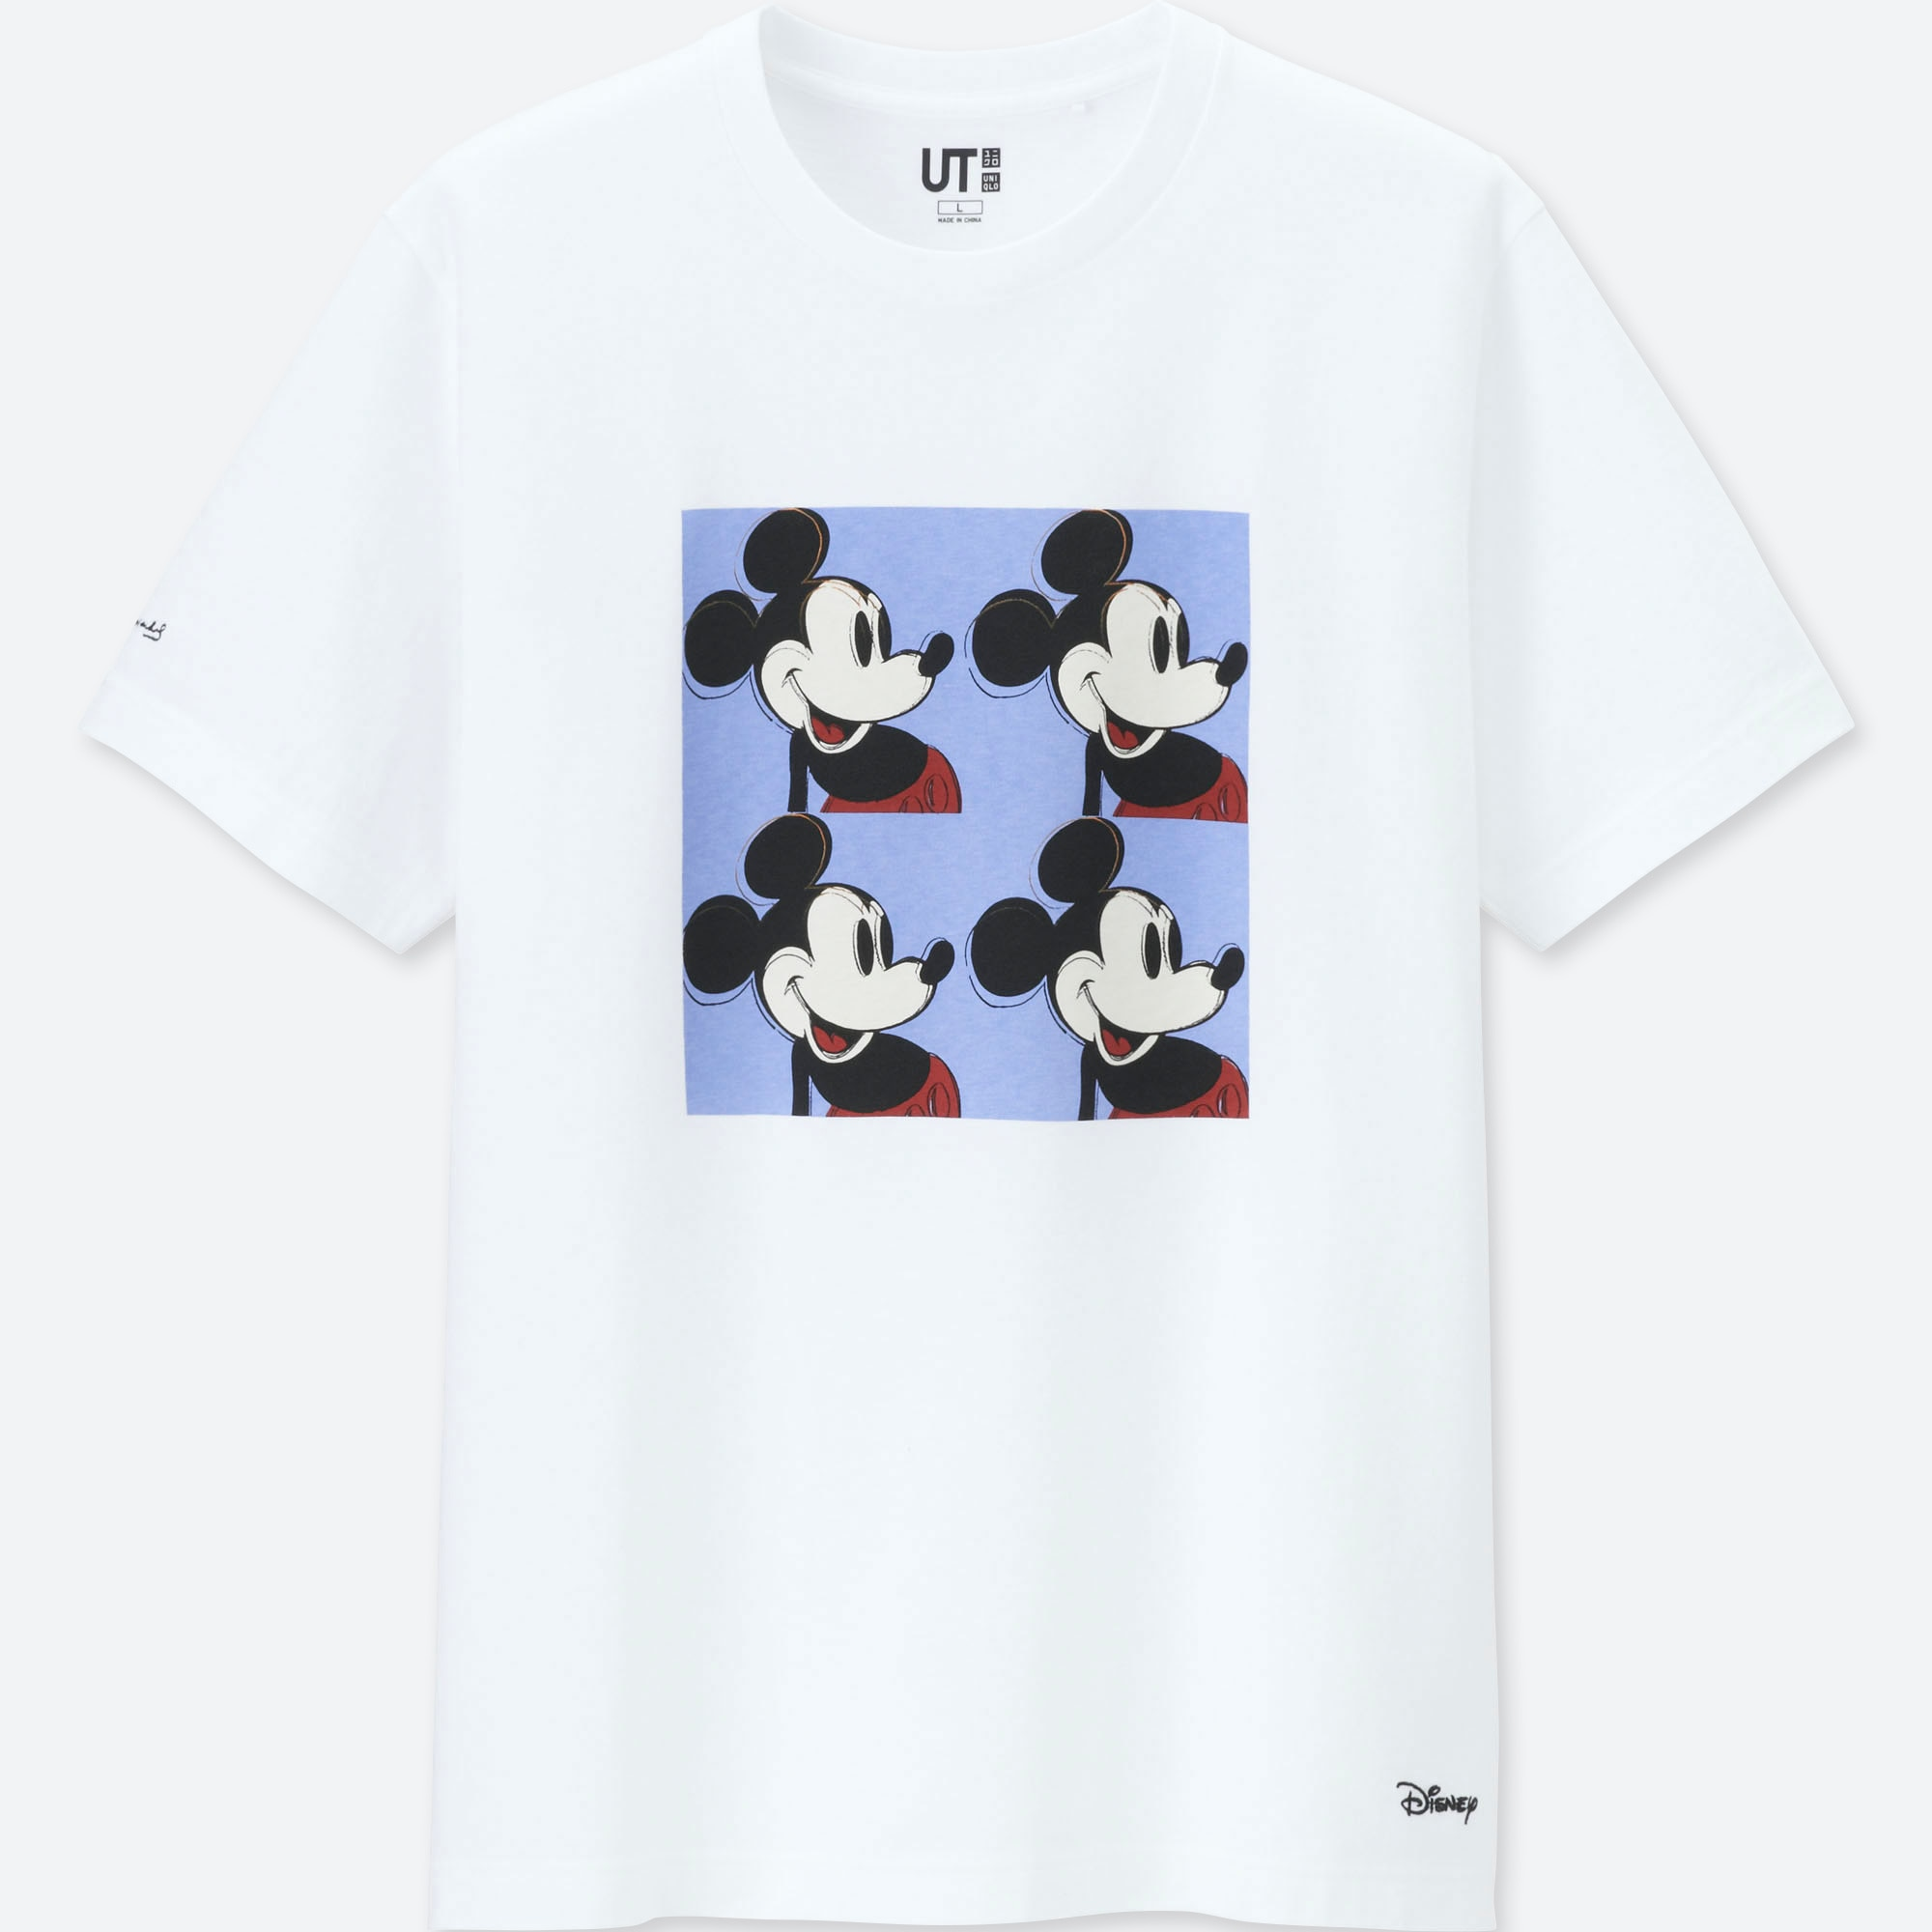 8e6ae3f7f475e MICKEY MOUSE ART BY ANDY WARHOL UT (SHORT-SLEEVE GRAPHIC T-SHIRT ...